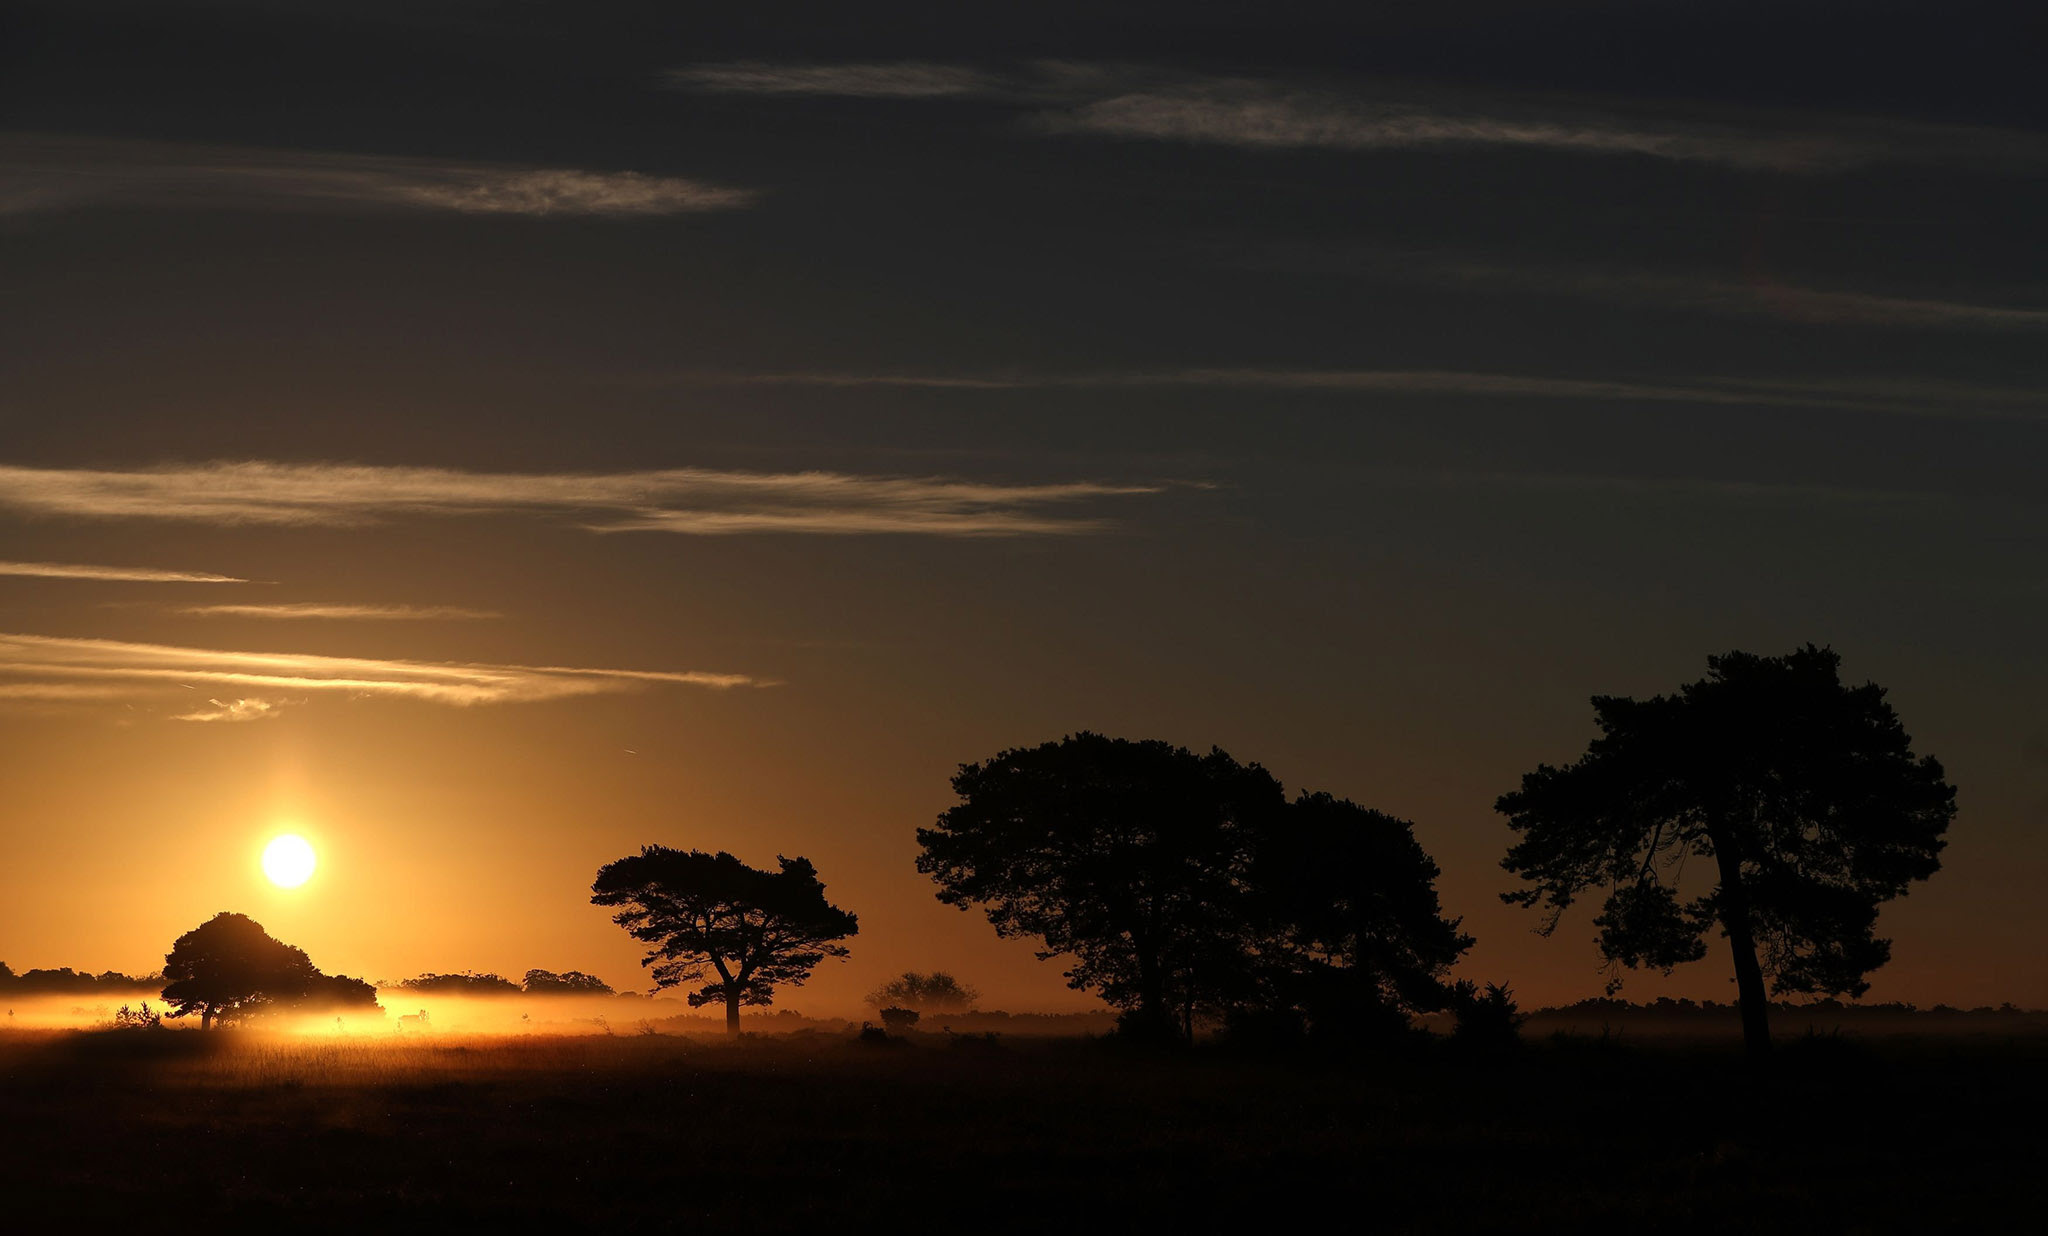 The sun rises over the New Forest in Hampshire. PRESS ASSOCIATION Photo. Picture date: Thursday October 27, 2016. Photo credit should read: Andrew Matthews/PA Wire